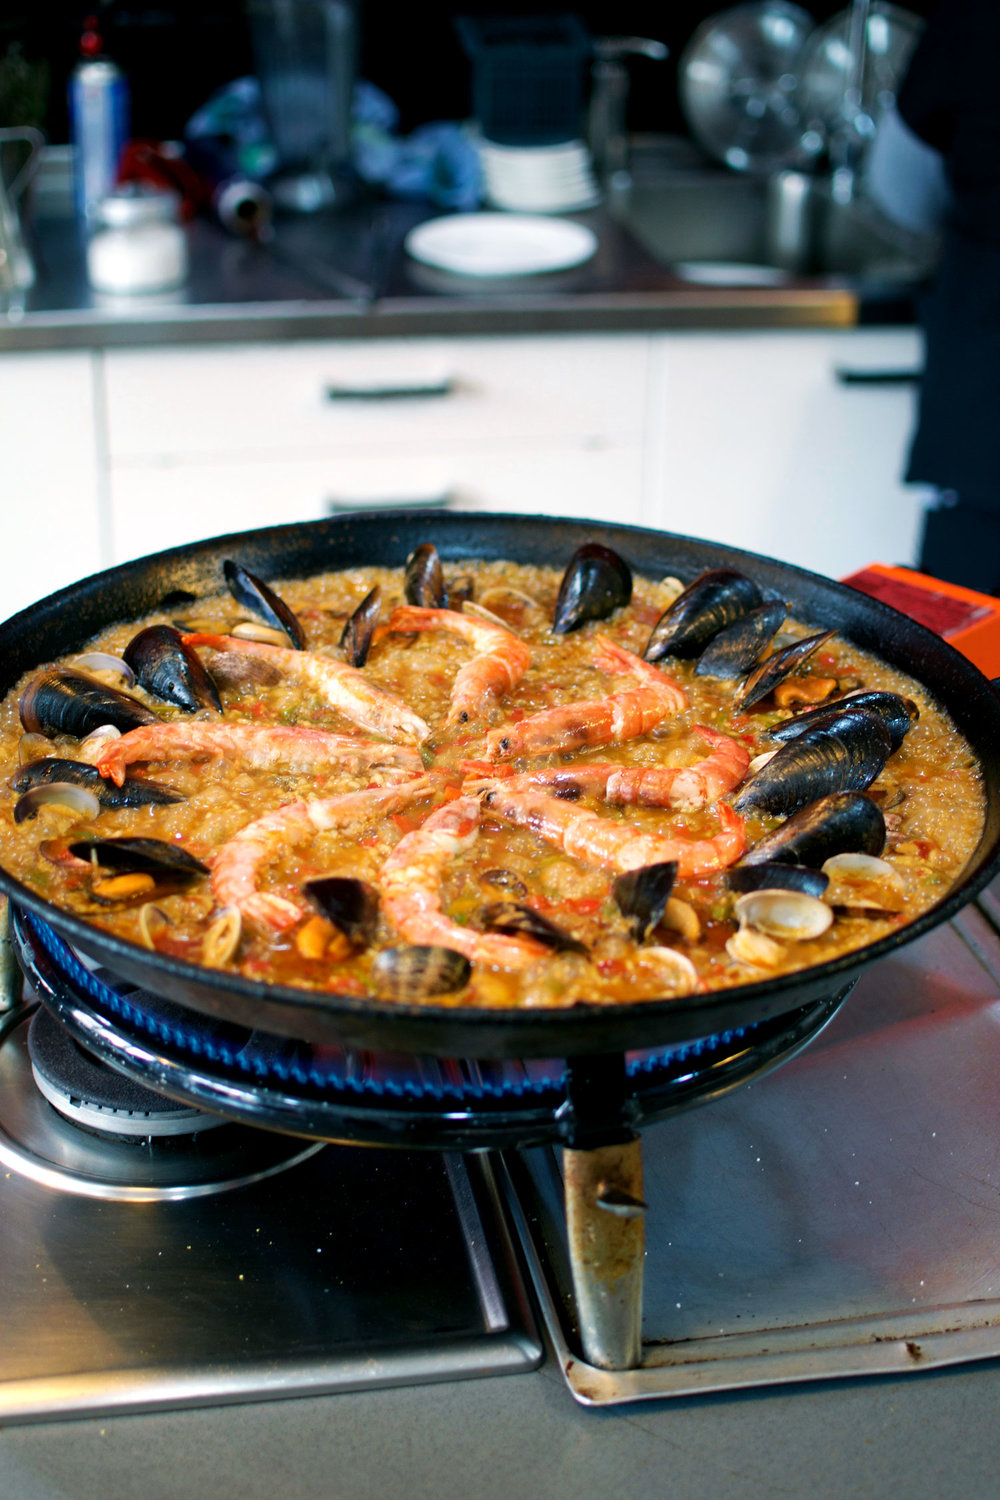 we dove into spanish cuisine pretty deeply - in a cooking class! We learned how to make paella (along with crema Catalana and much more) and semi-successfully re-created this recipe at home last weekend. We truly enjoyed our experience at  barcelona cooking  and felt it was a great value for the money!